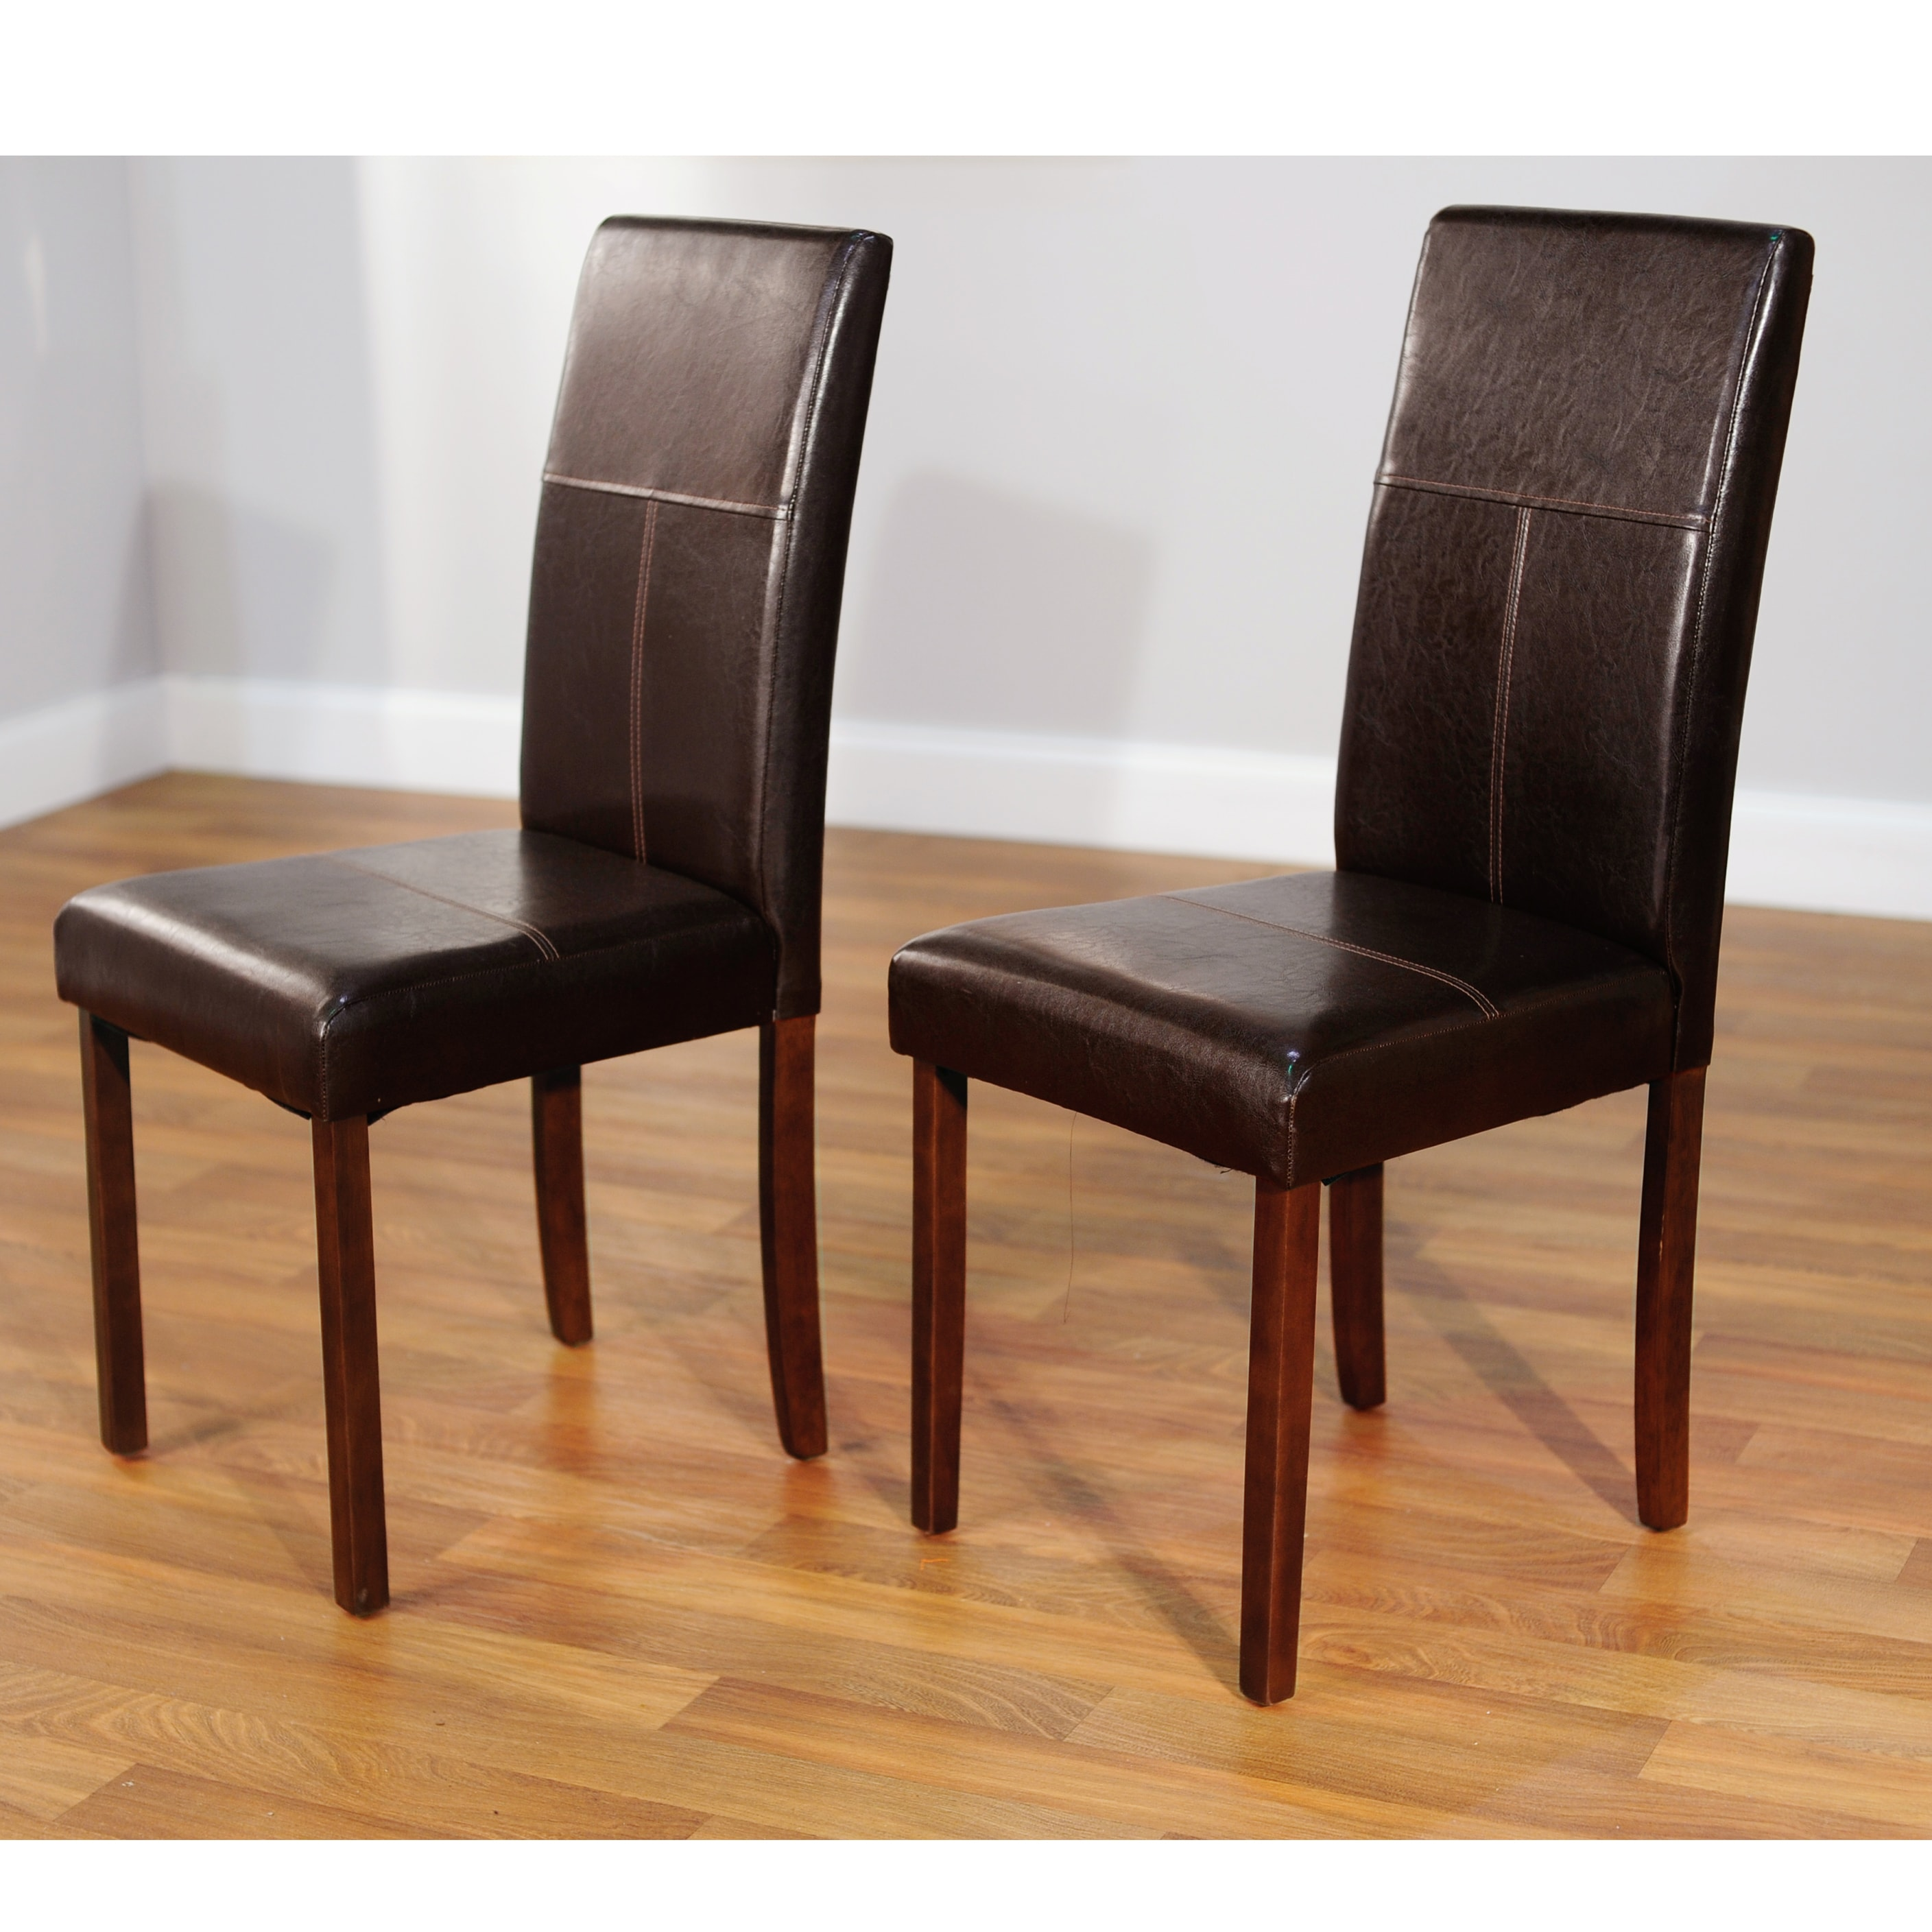 furniture gt dining room furniture gt chair gt classic